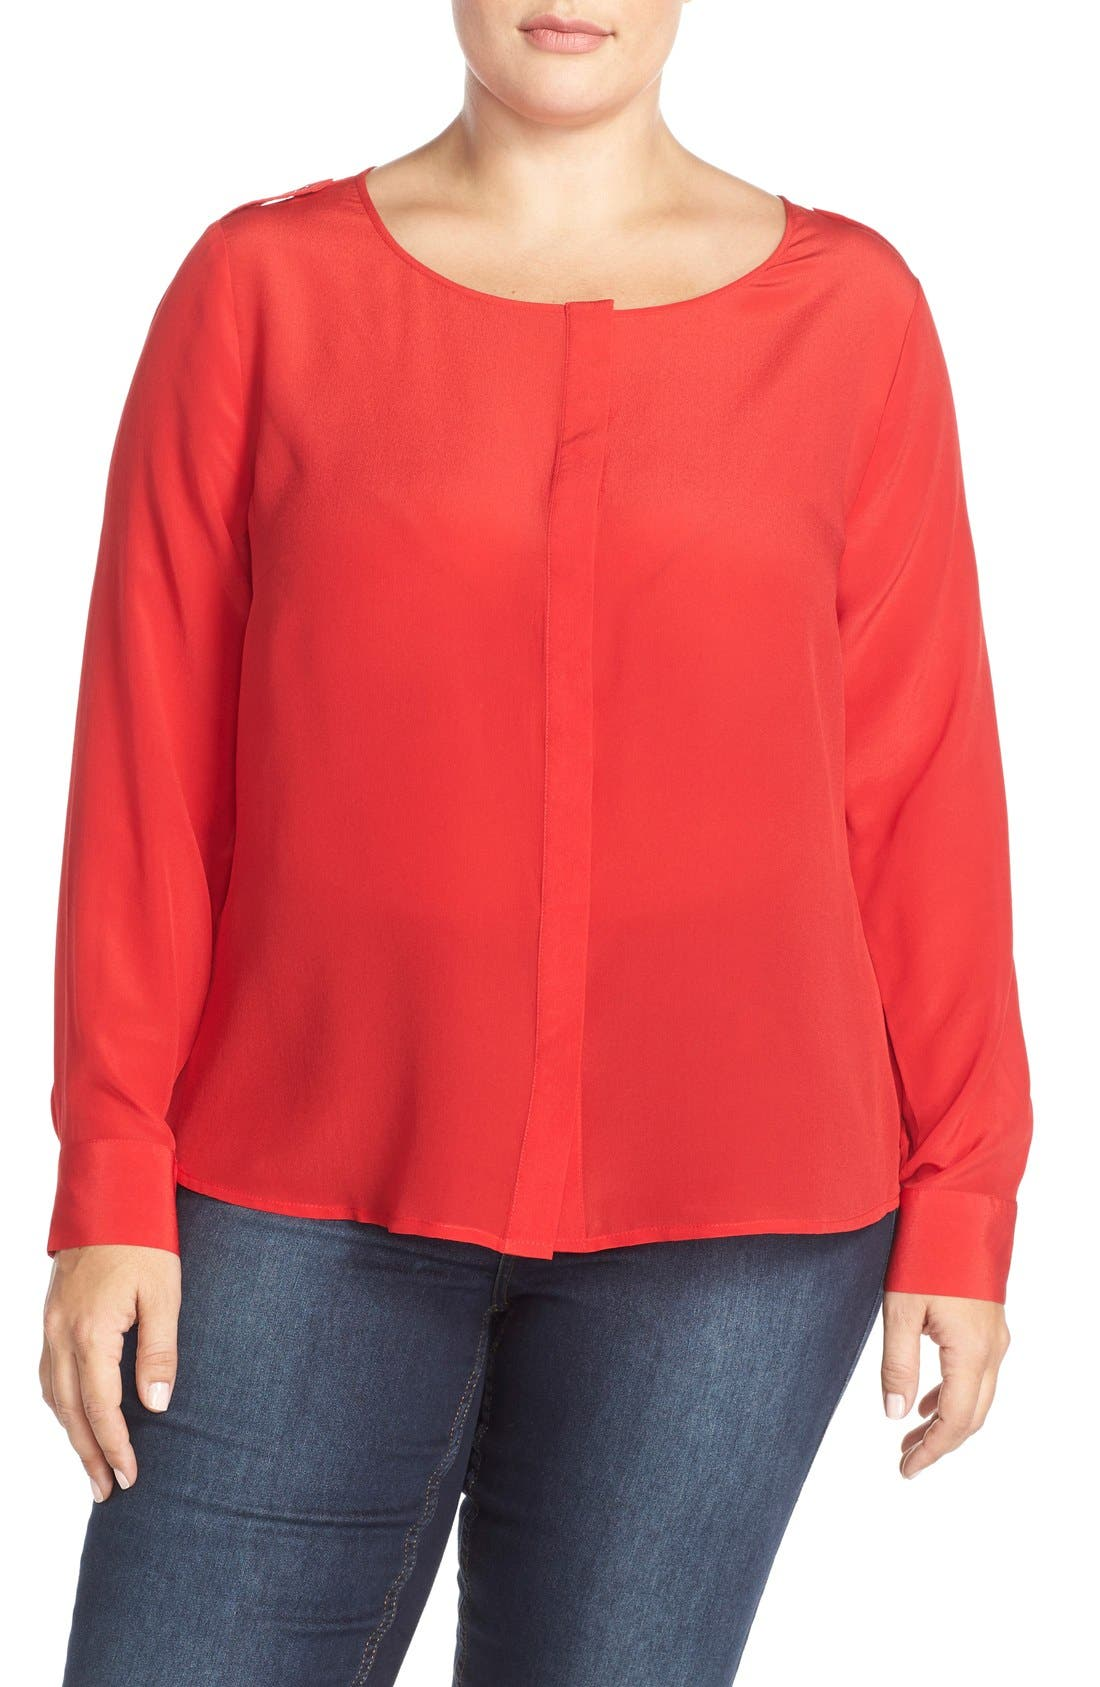 'Krista' Mirror Print Silk Top,                             Main thumbnail 1, color,                             Tango Red